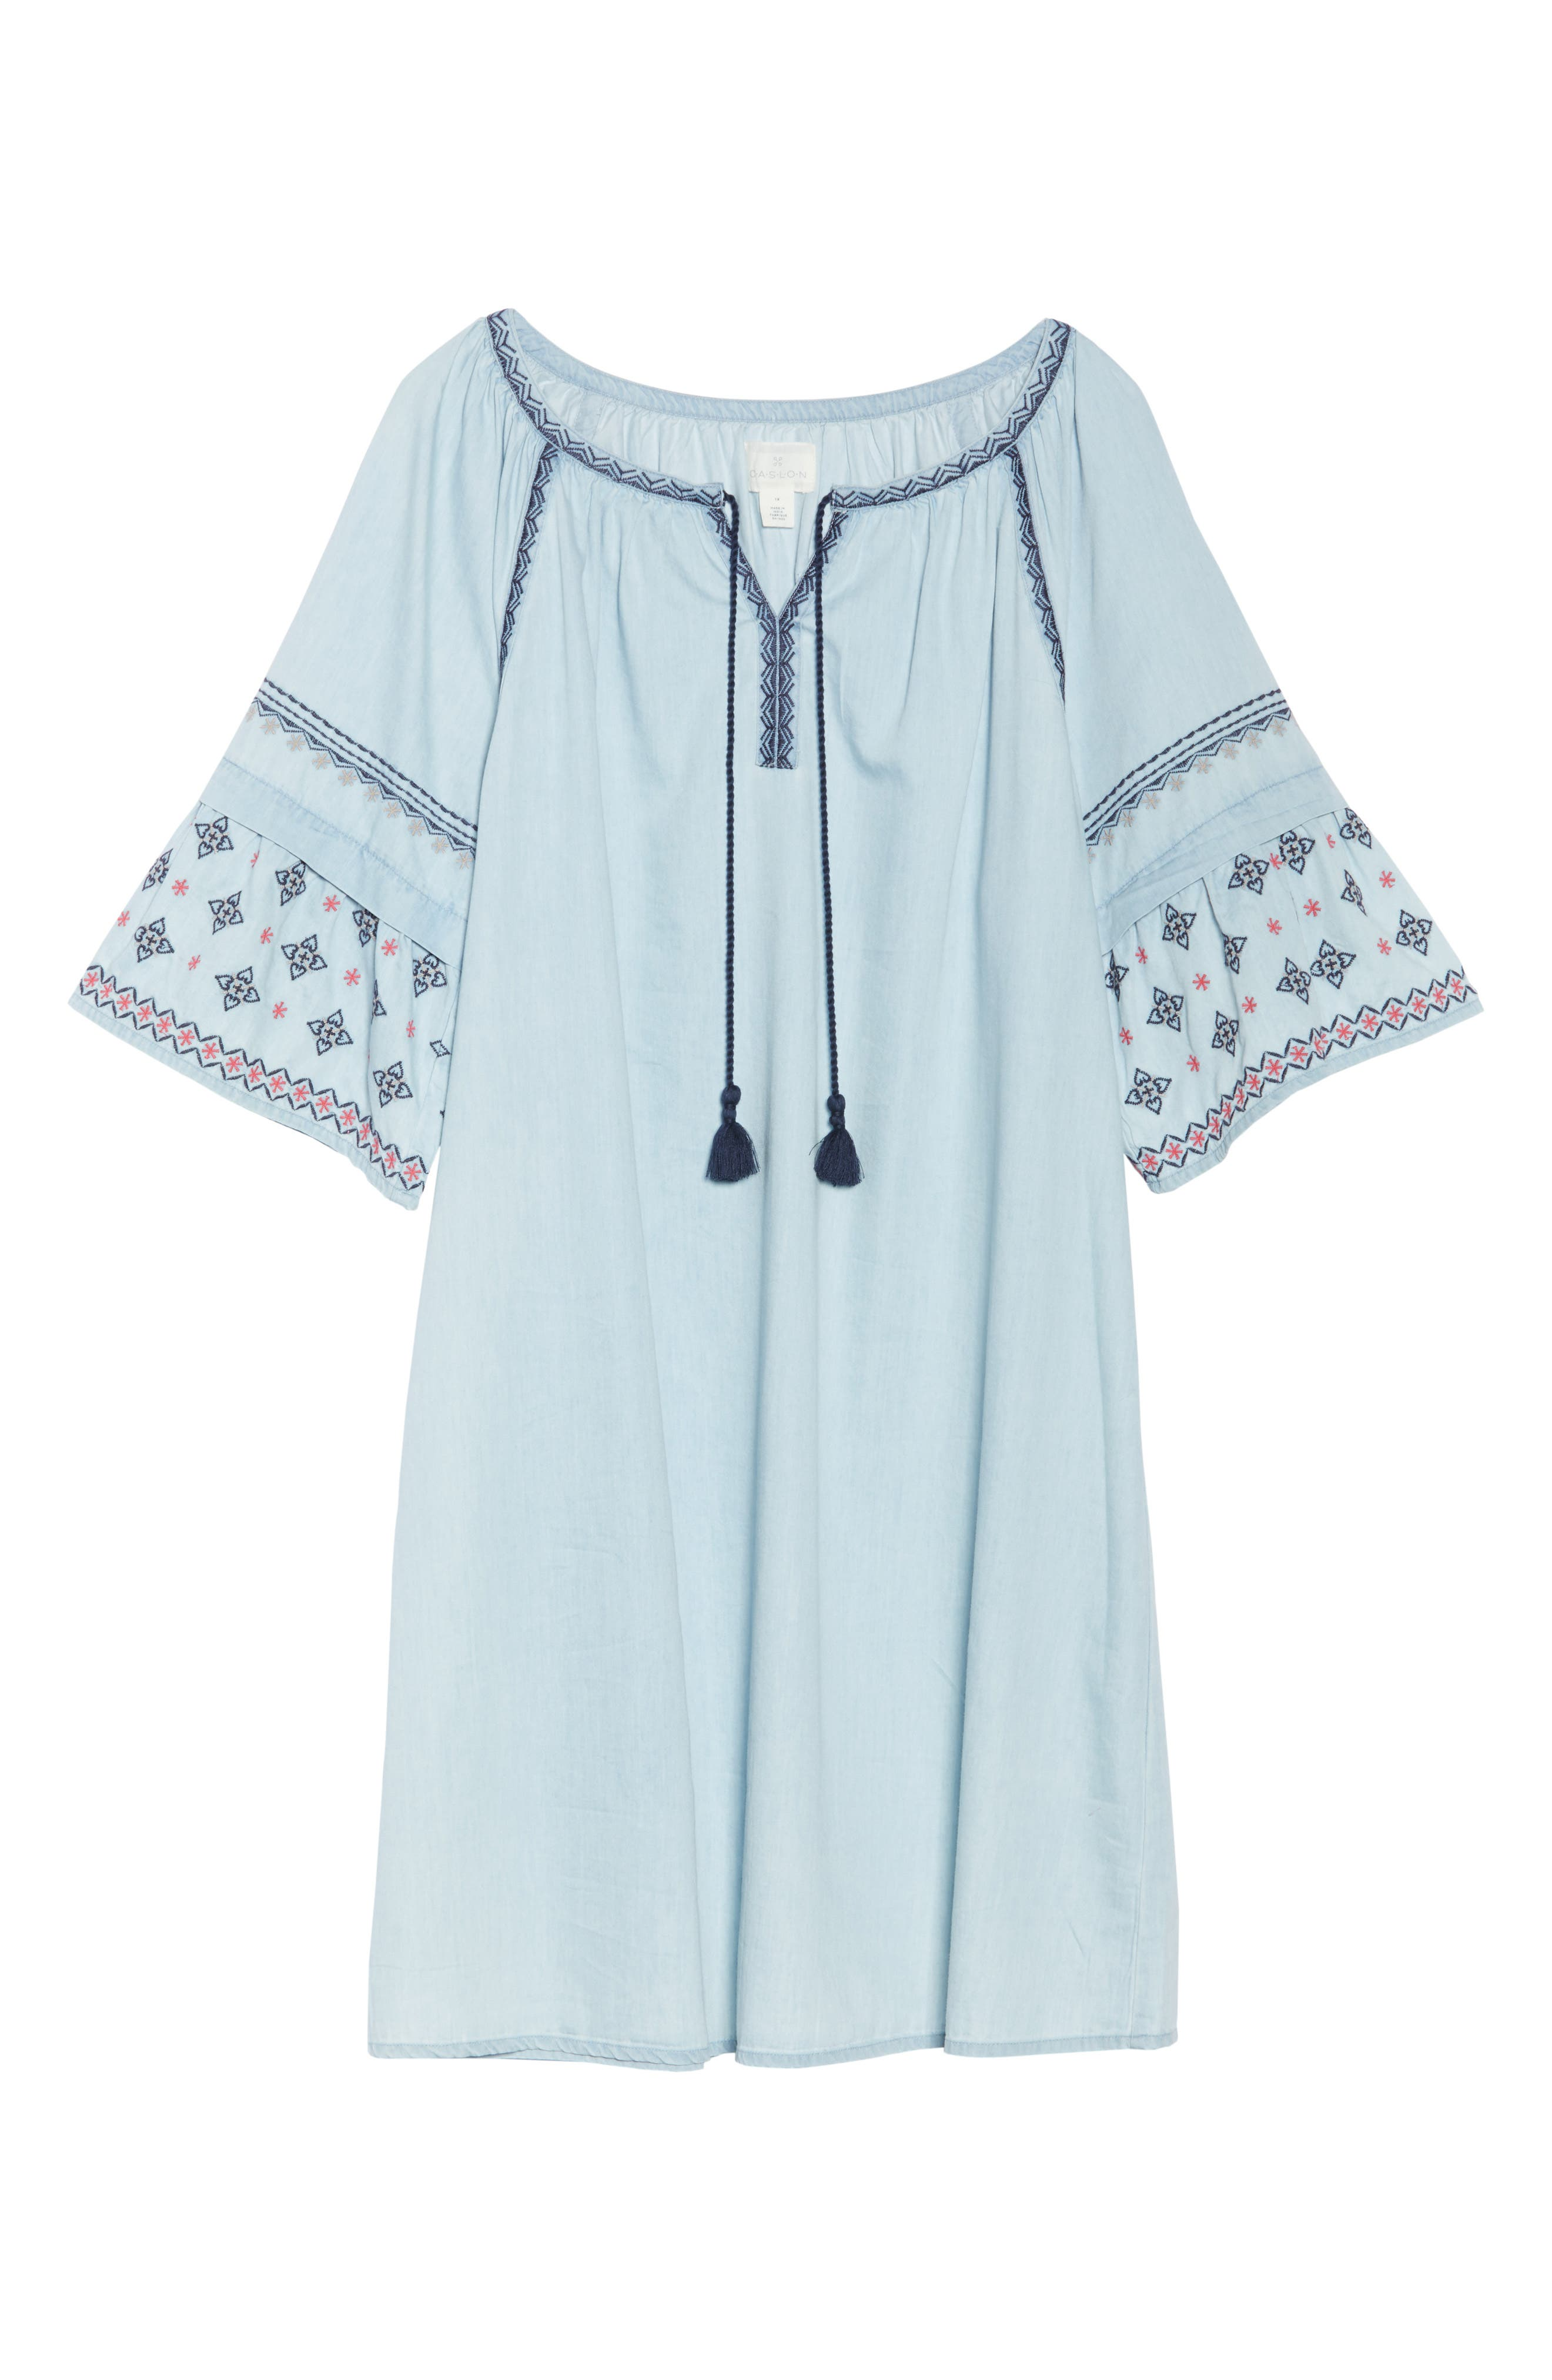 Embroidered Chambray Dress,                             Alternate thumbnail 6, color,                             420